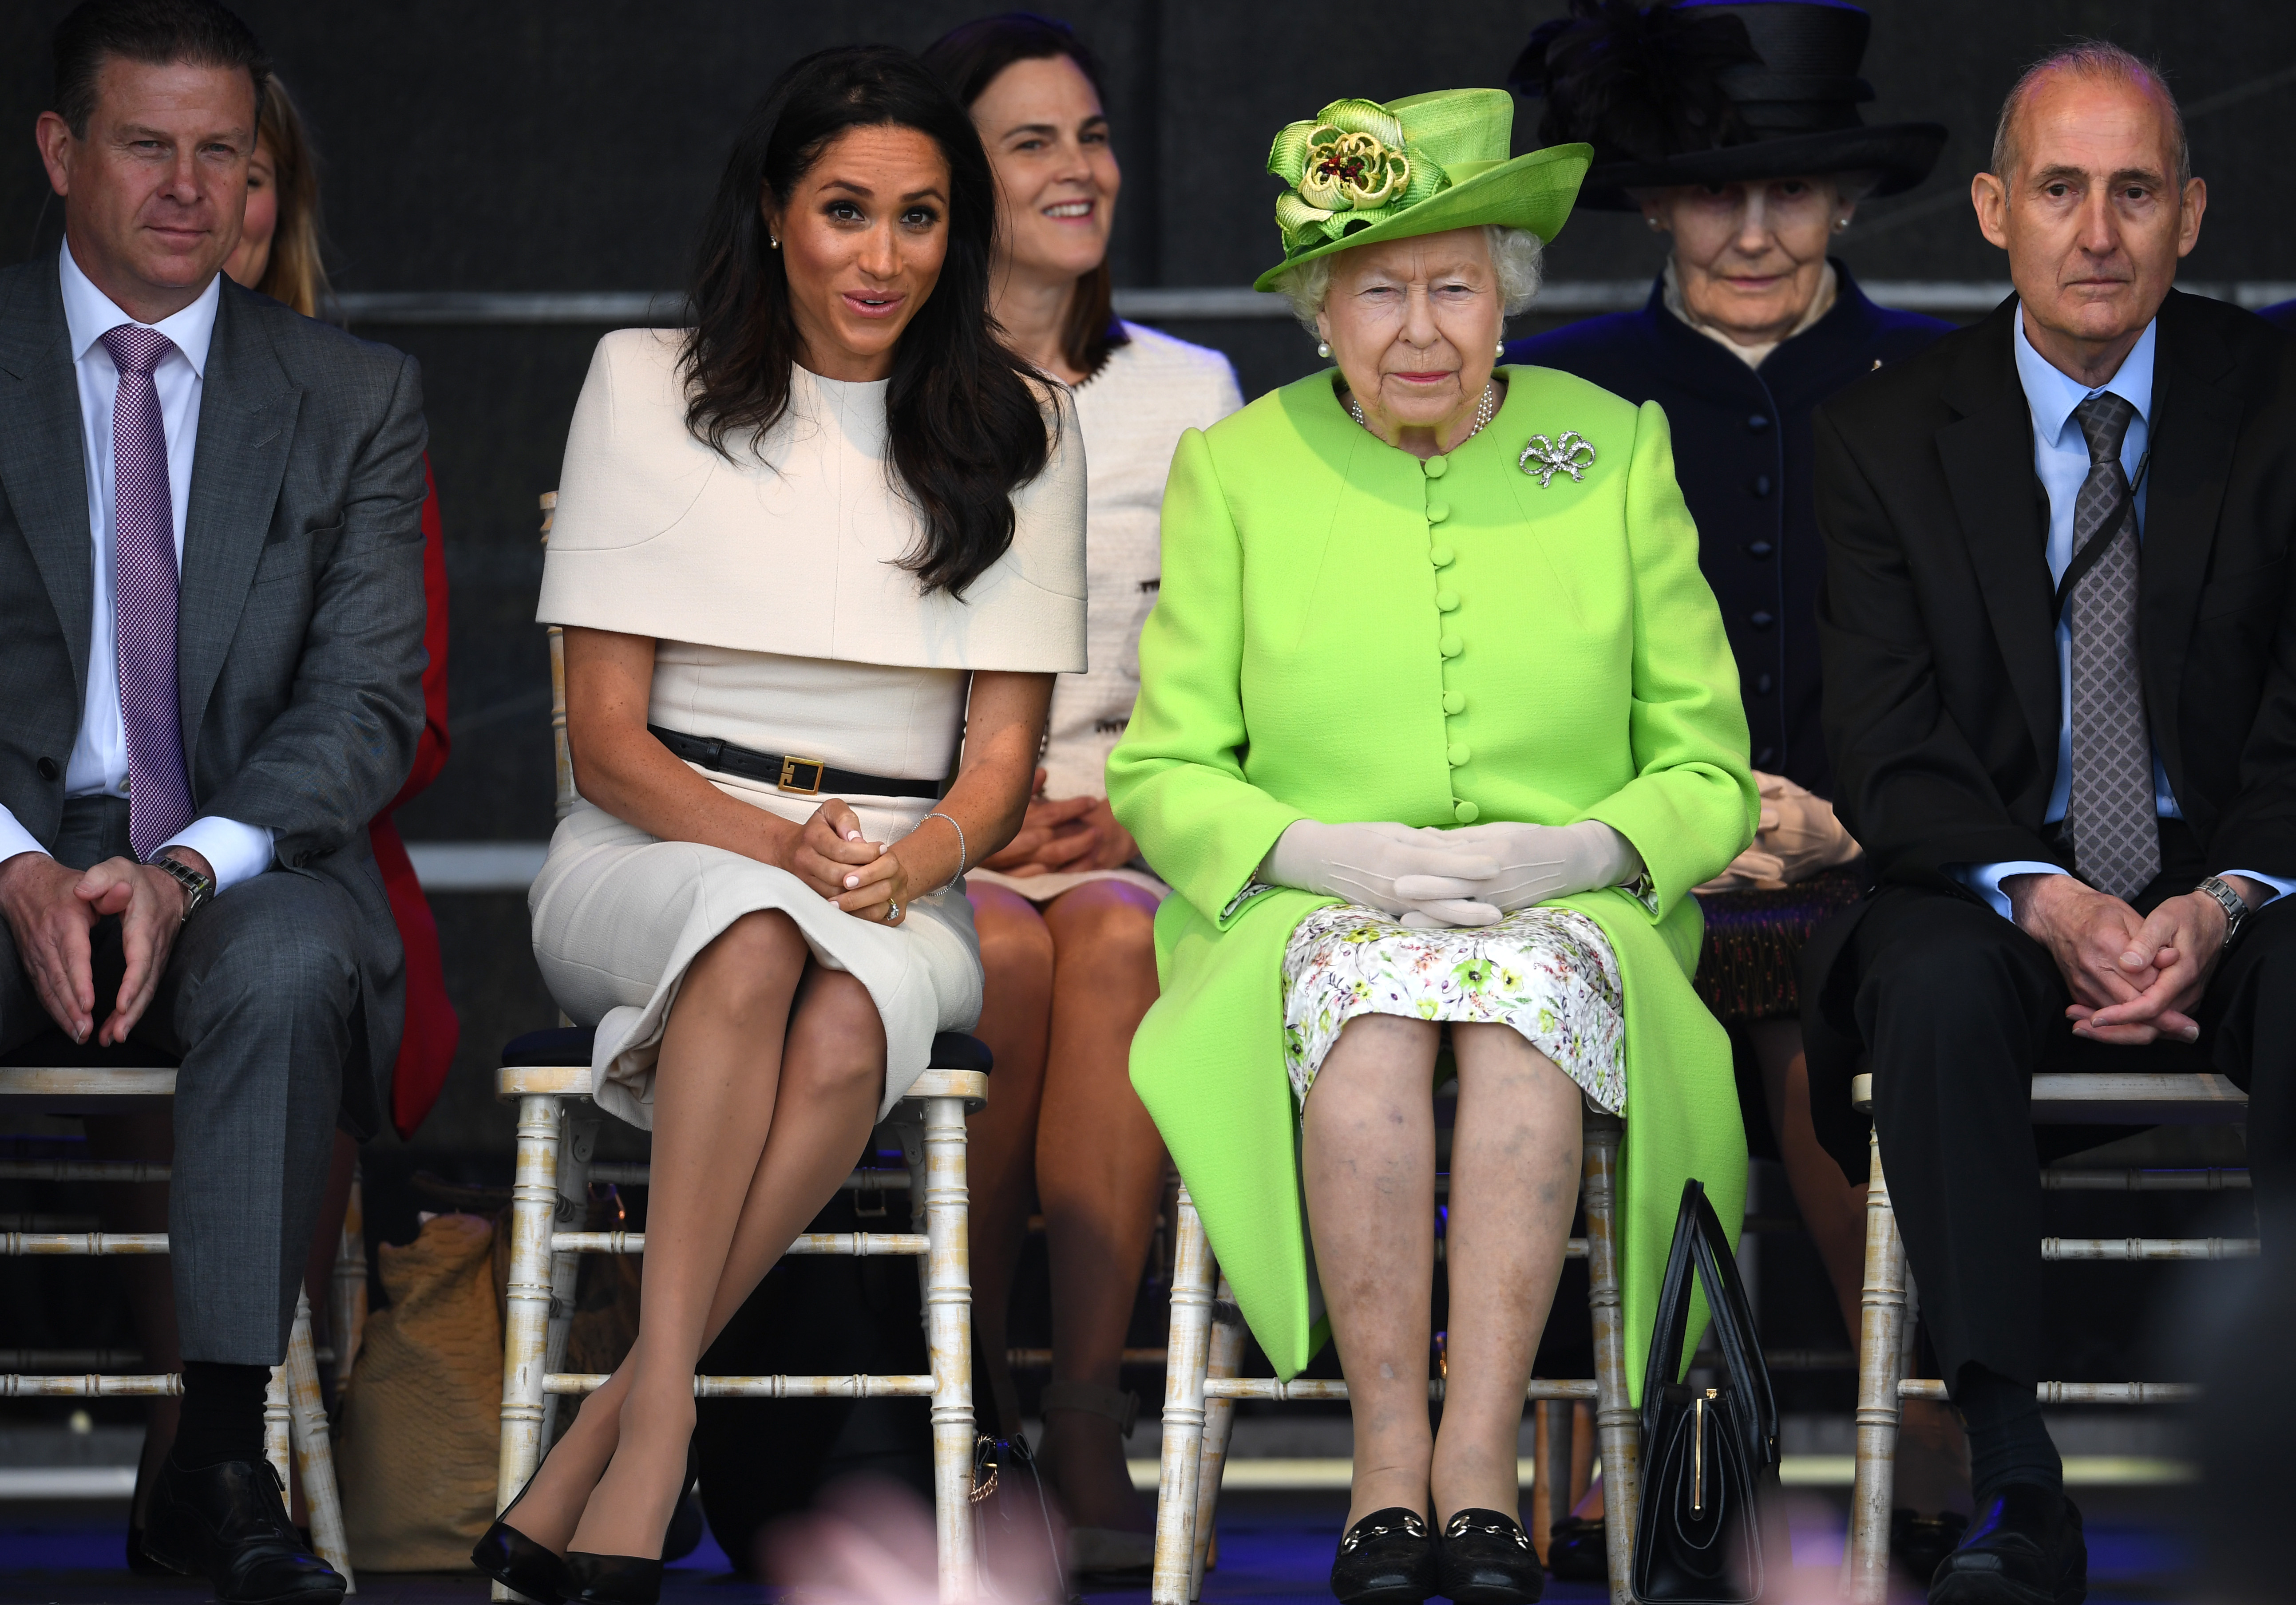 Meghan Markle doing the 'Duchess Slant' while on royal duty with the Queen (Source: Getty Images)